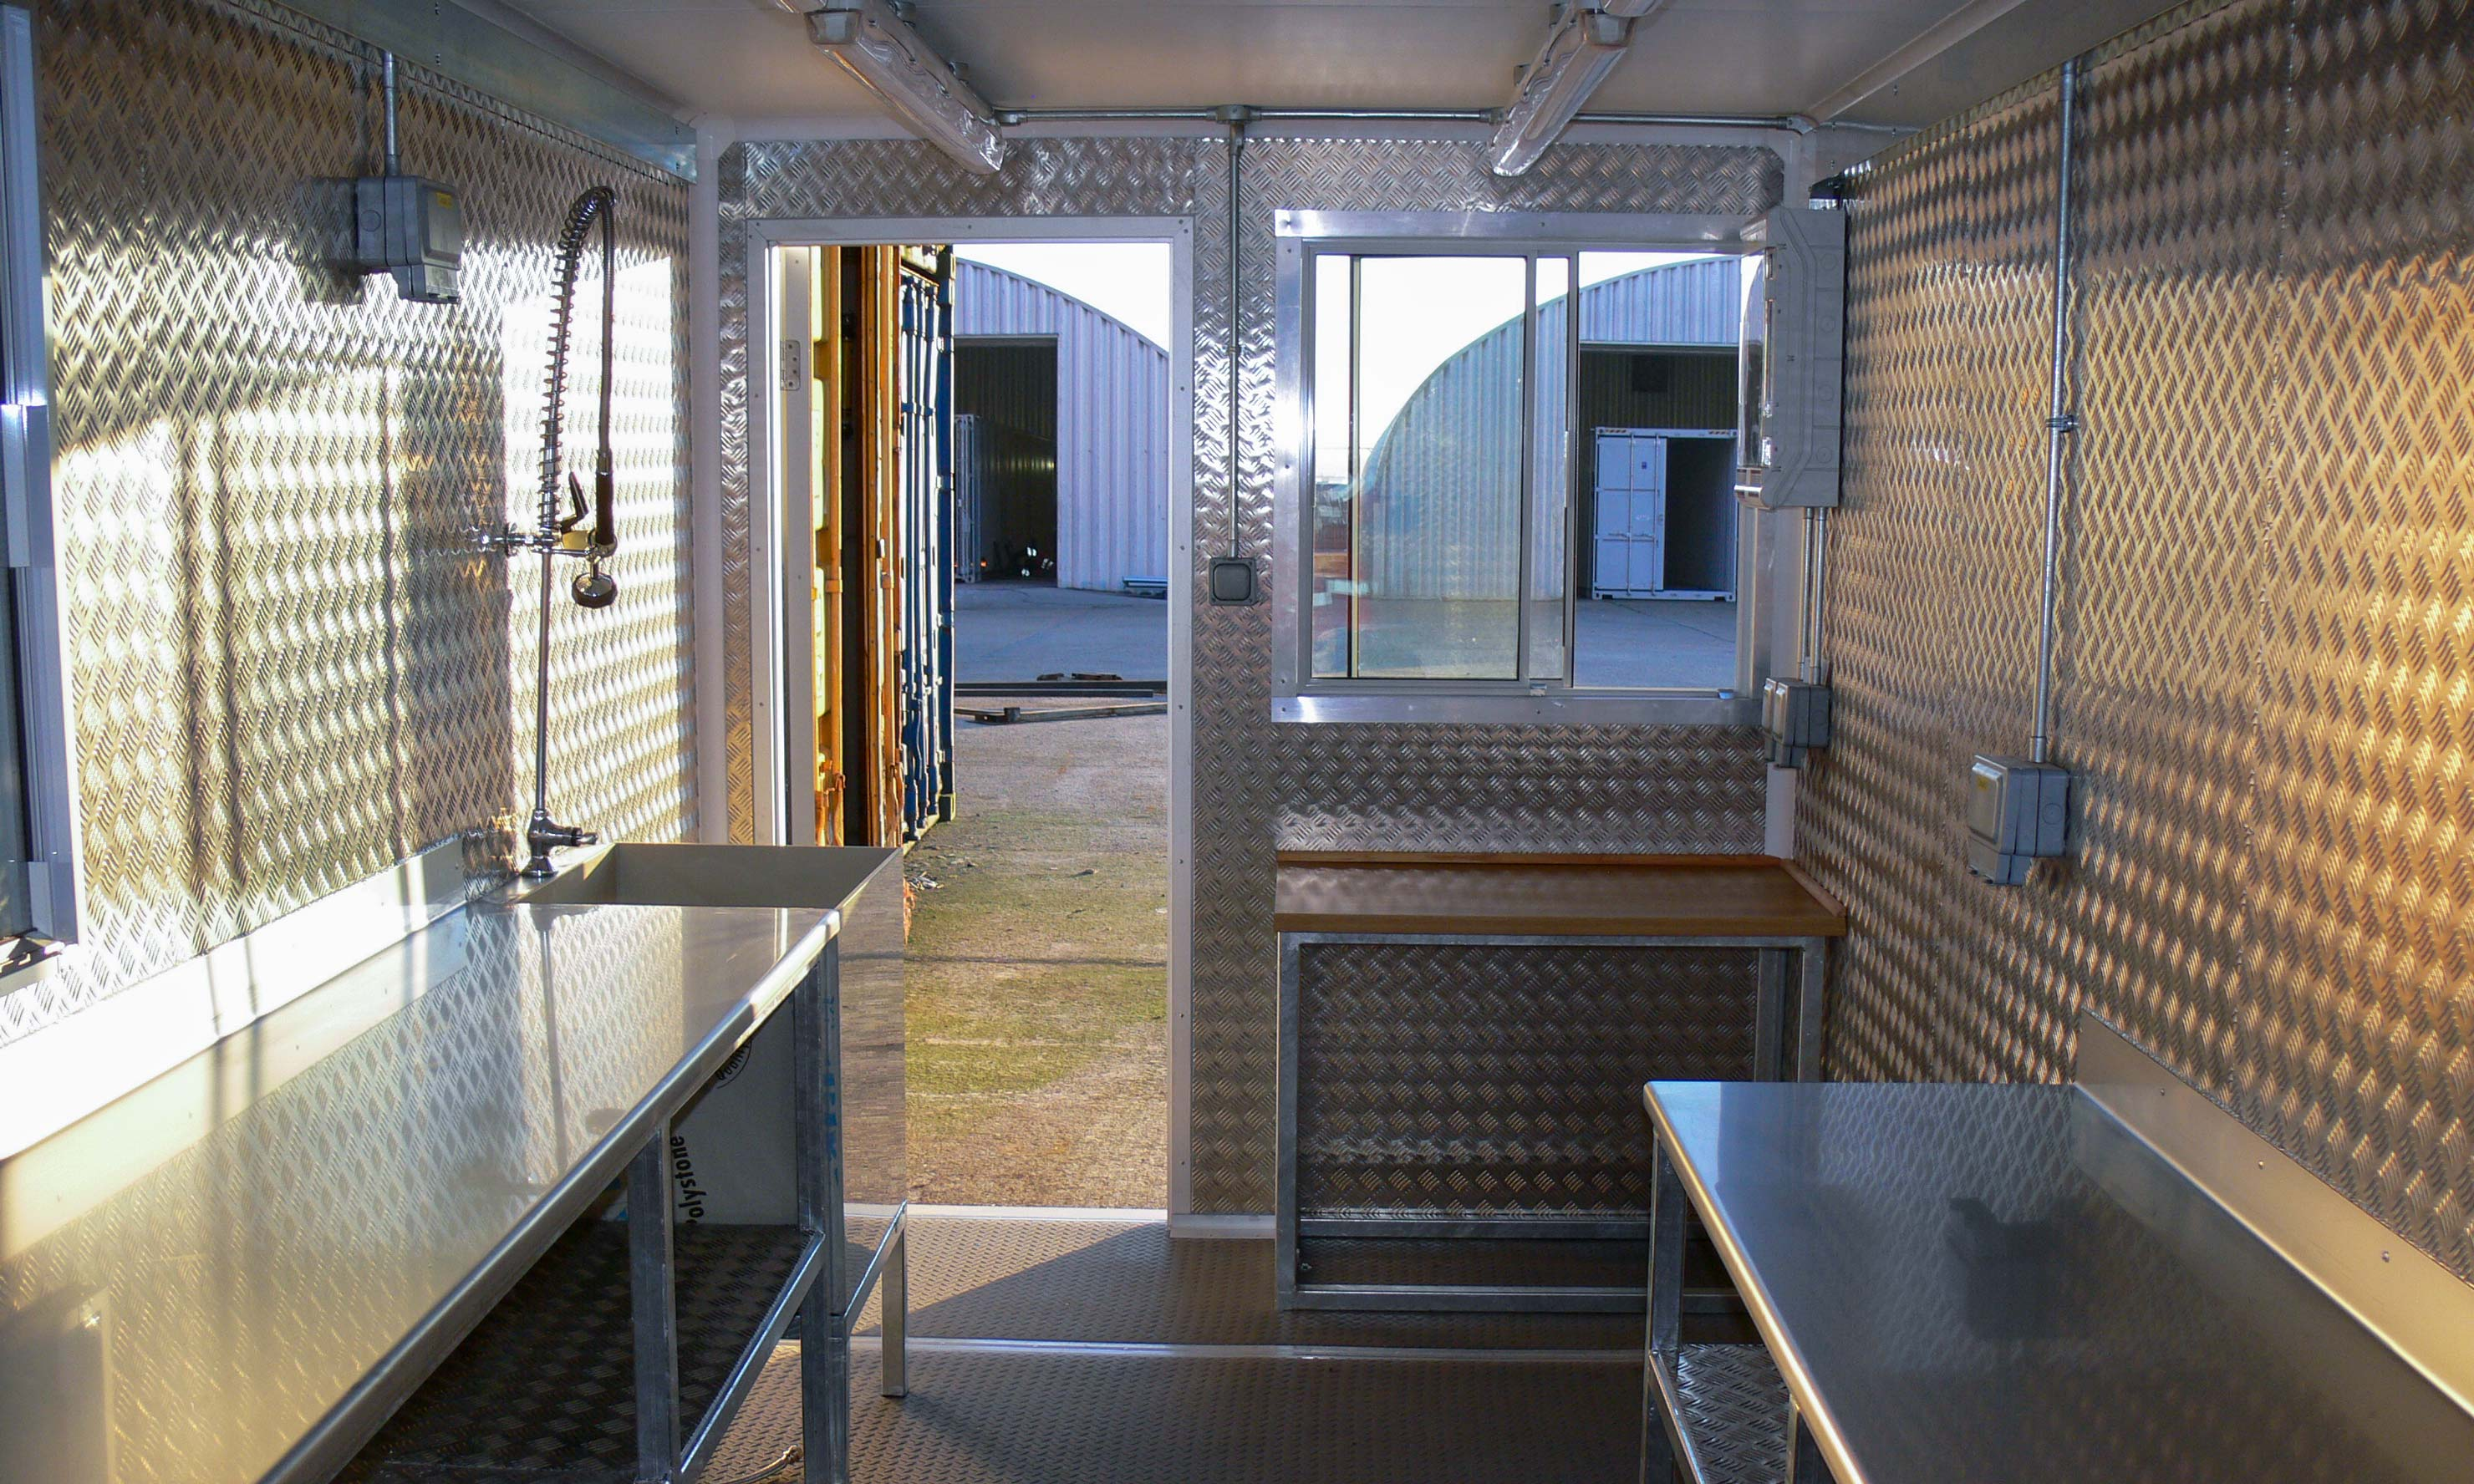 Science Laboratory Container Conversion